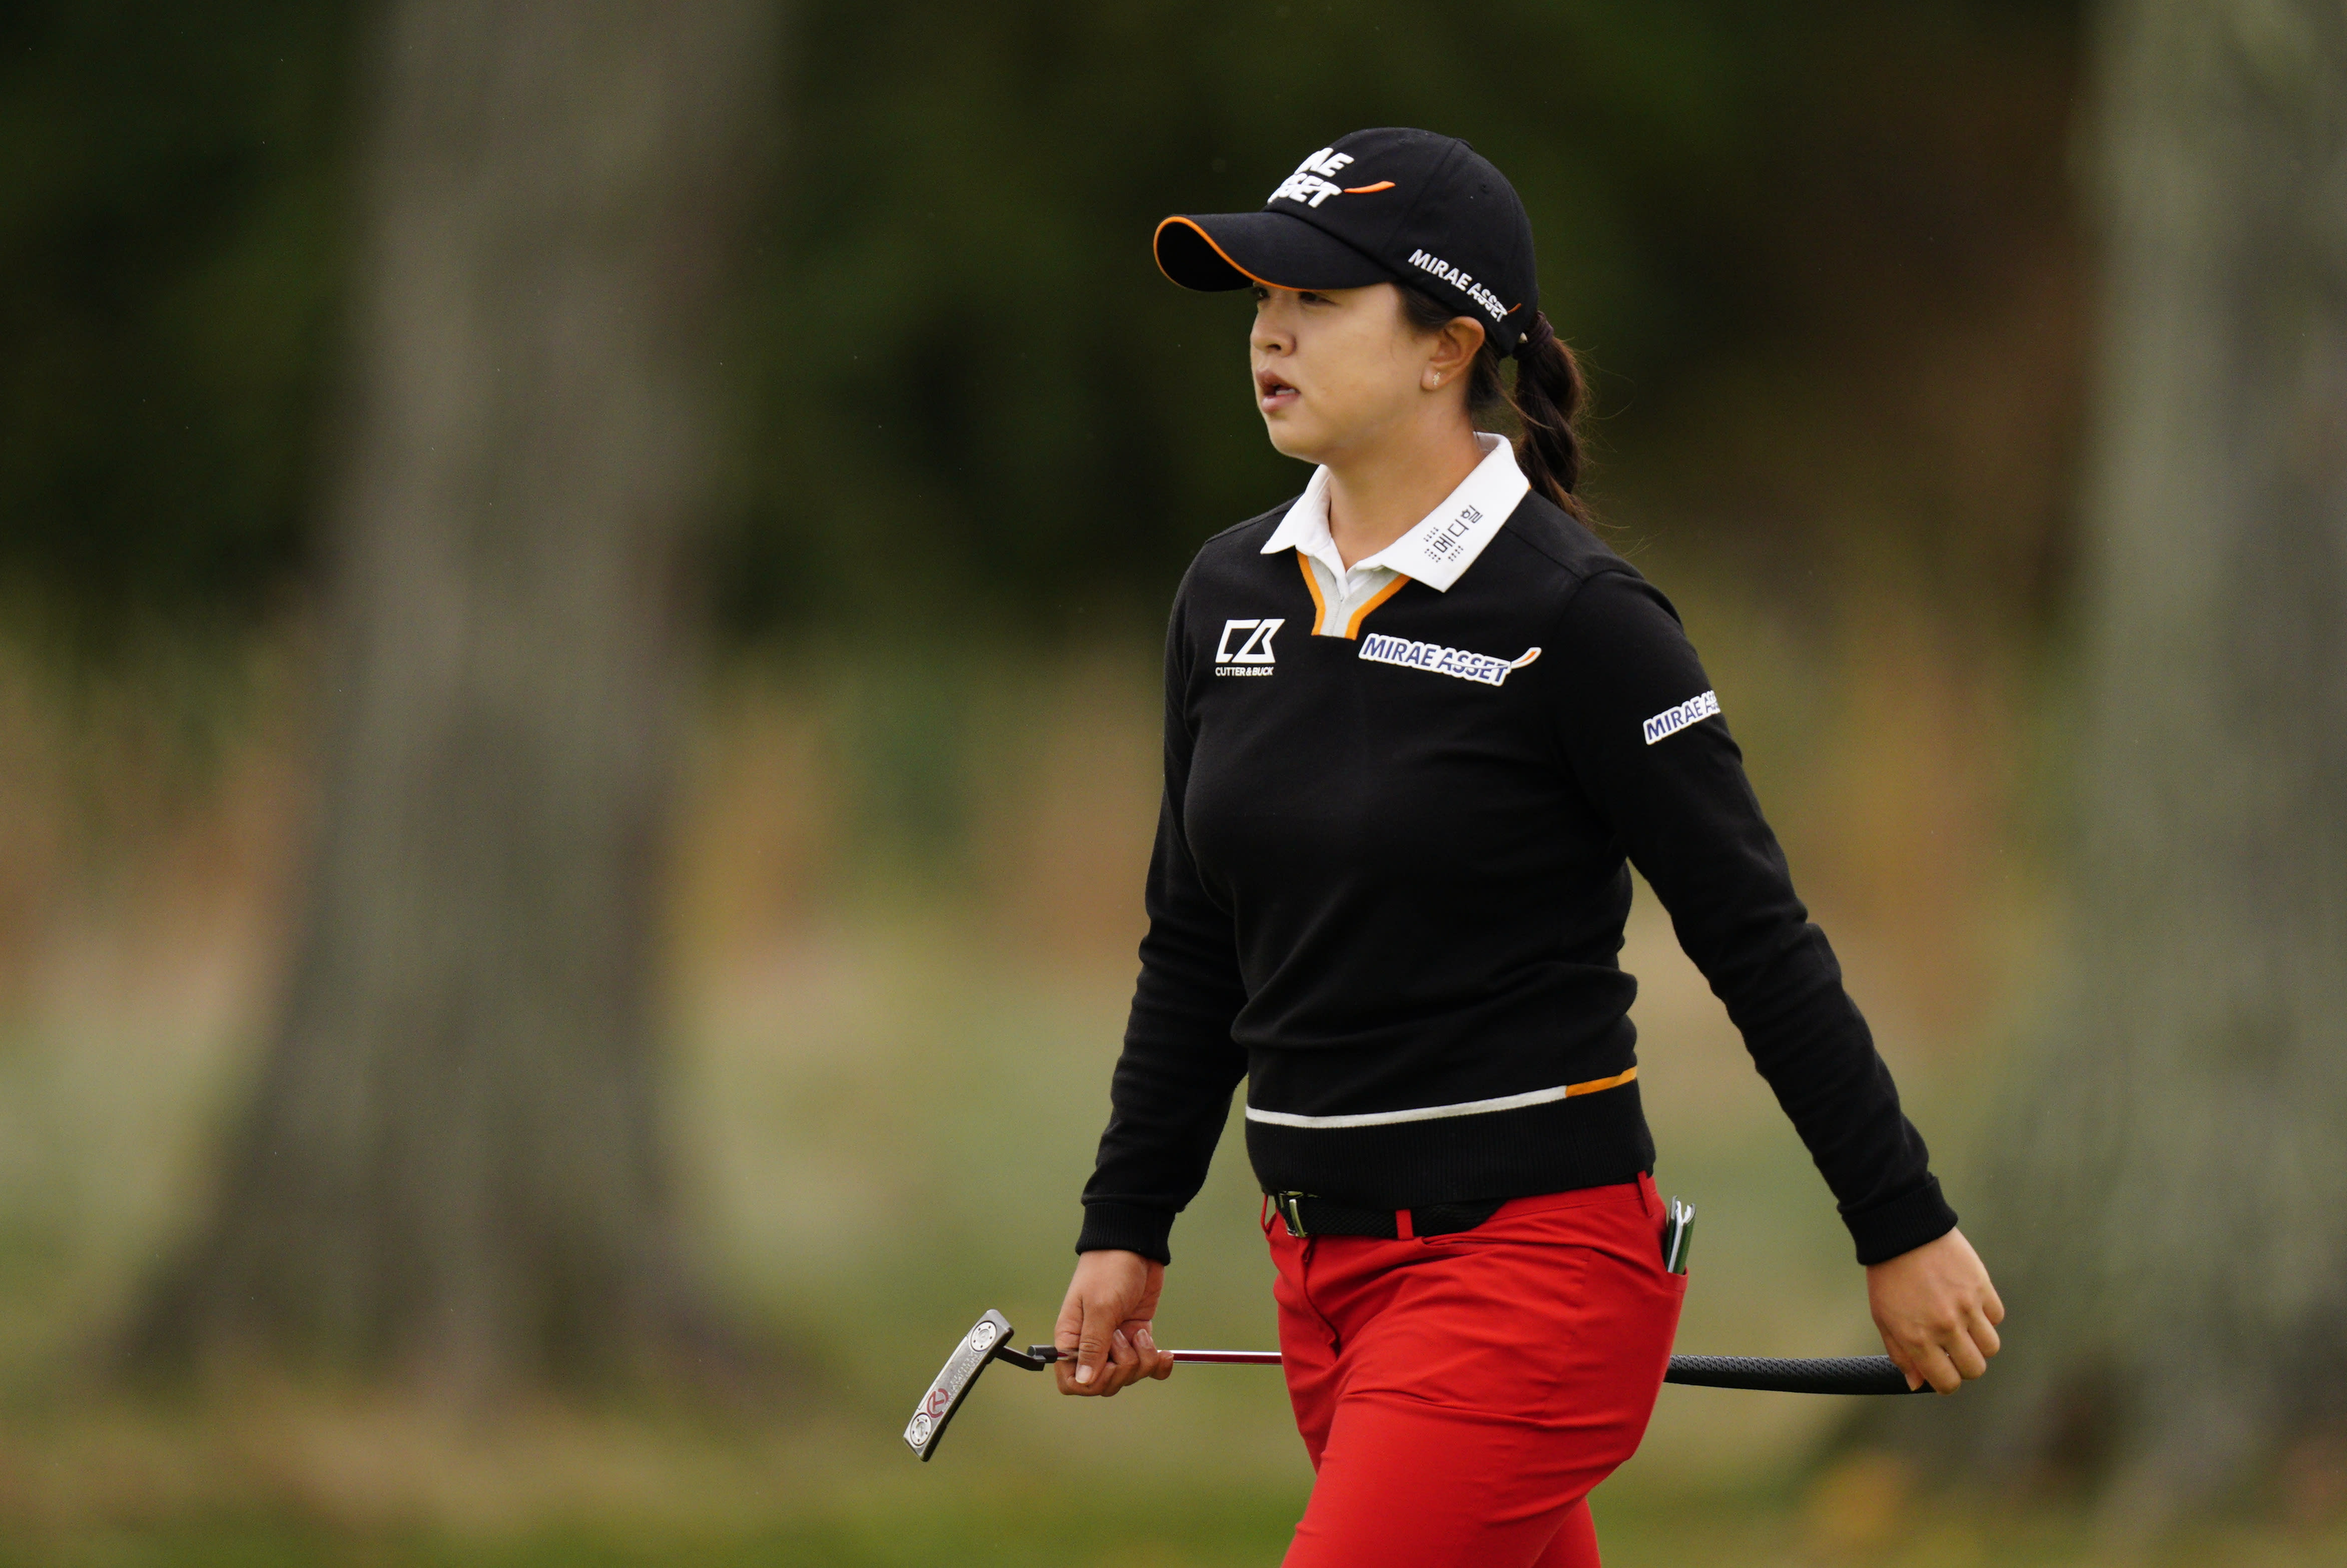 Sei Young Kim, of South Korea, walks to the eighth green during the final round at the KPMG Women's PGA Championship golf tournament at the Aronimink Golf Club, Sunday, Oct. 11, 2020, in Newtown Square, Pa. (AP Photo/Chris Szagola)